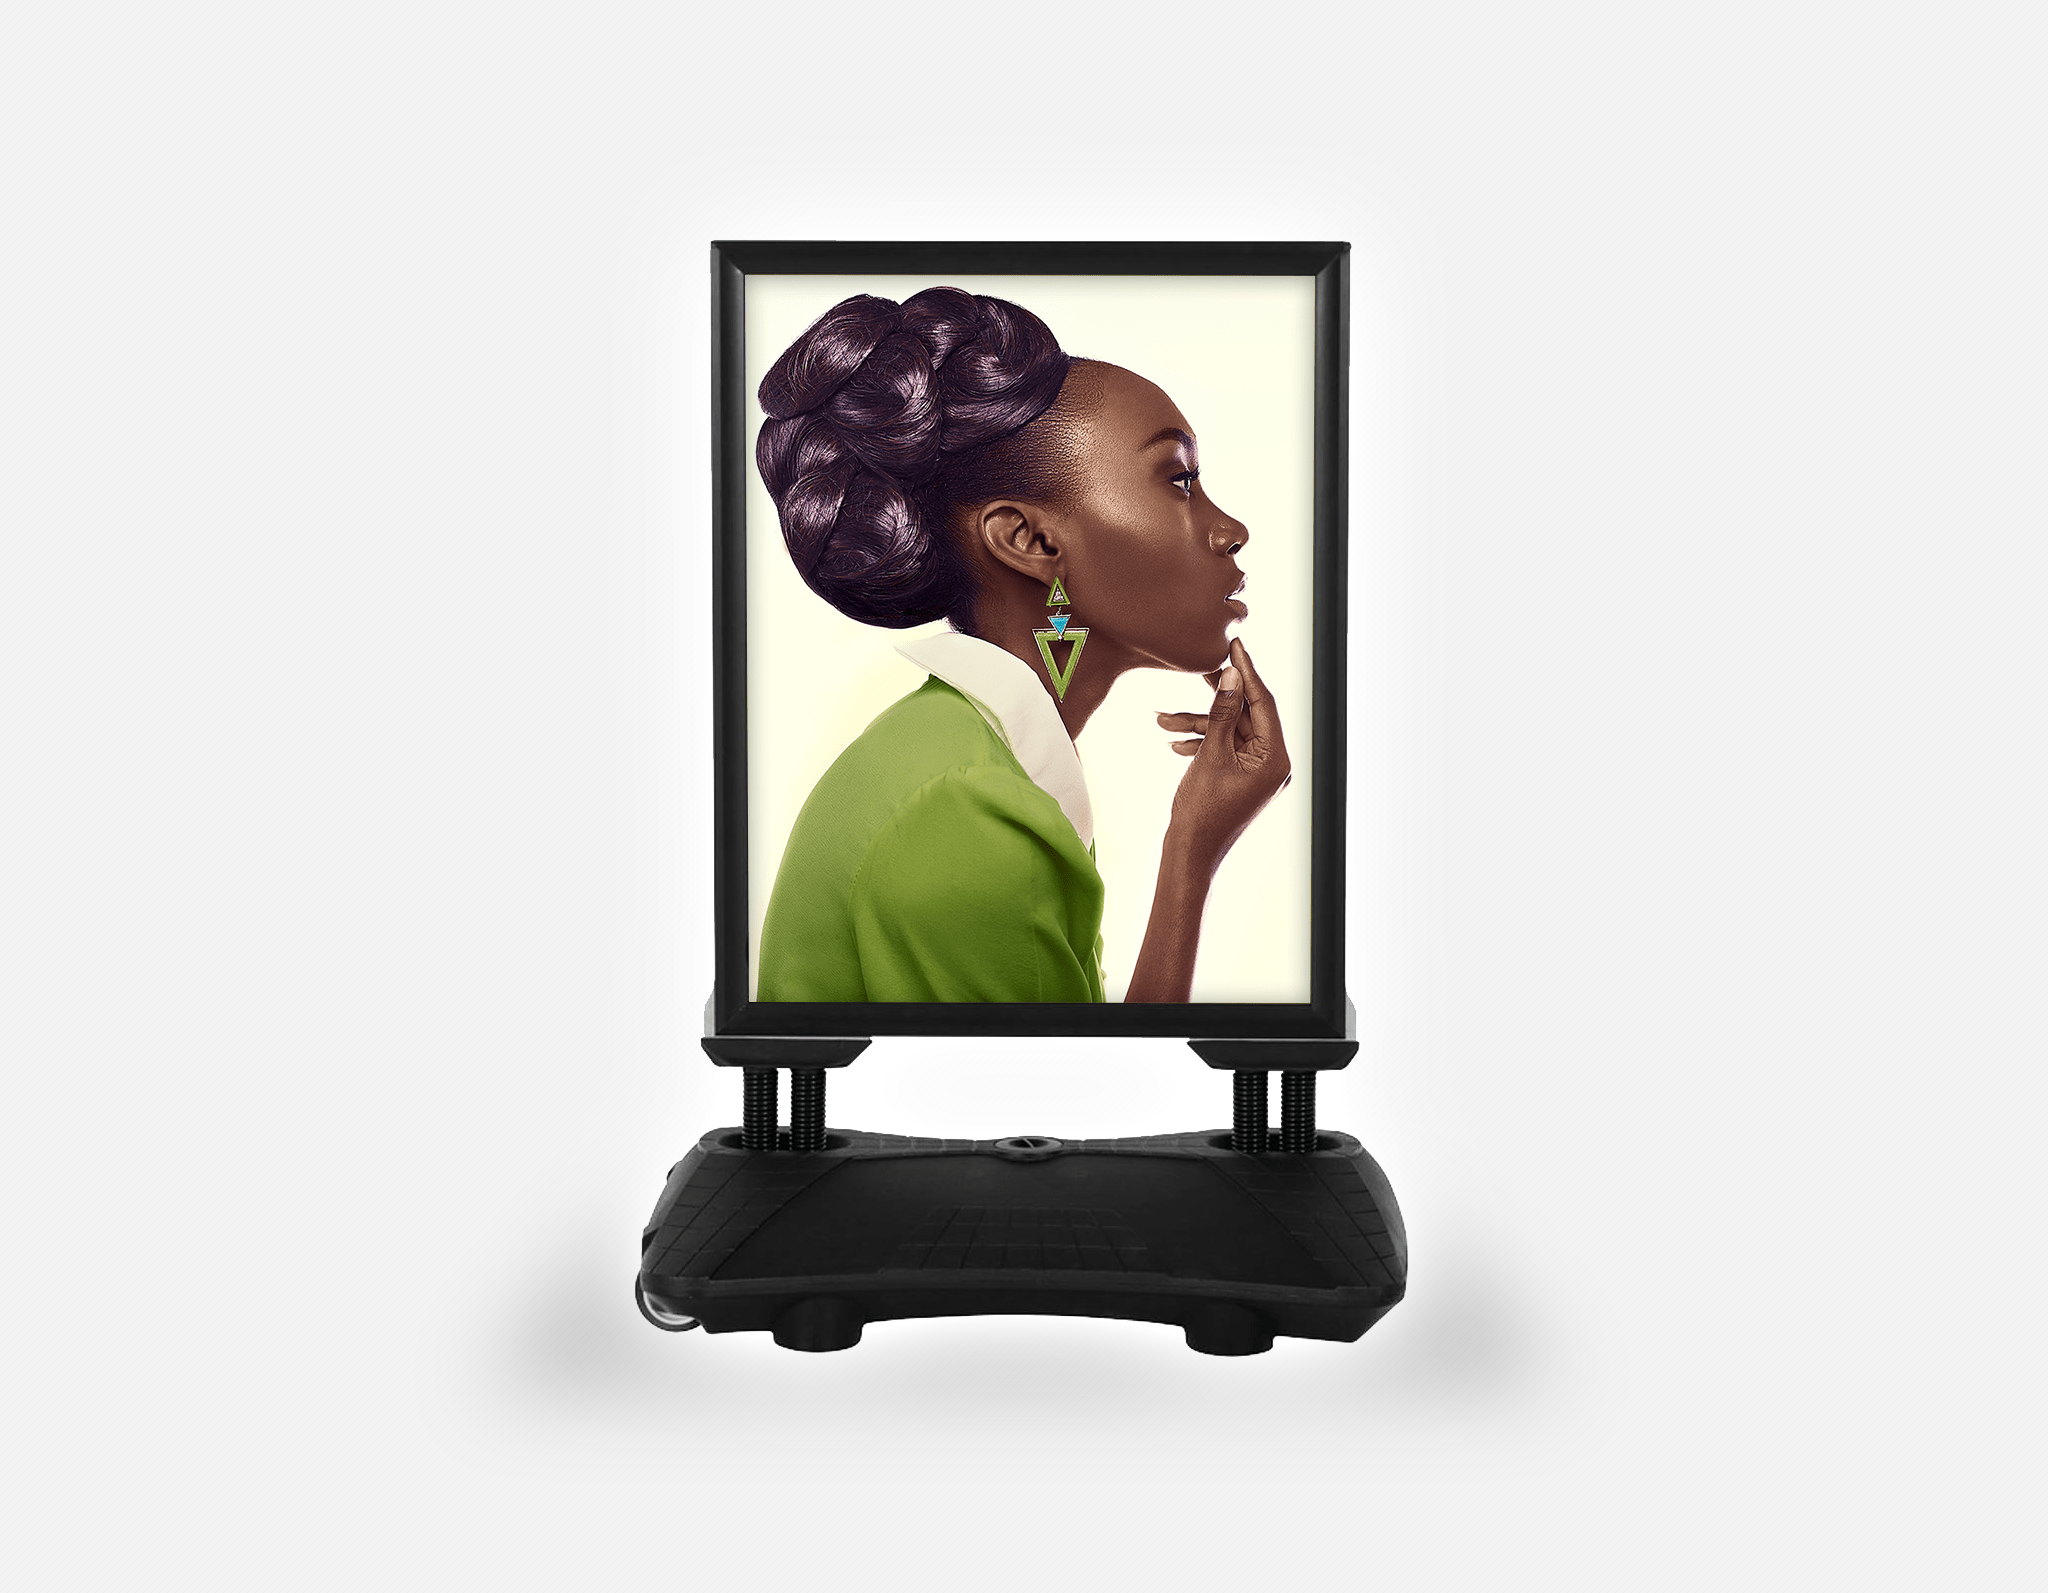 Water Base Pavements Sign: Dark Skinned Woman in Updo with Big Curls